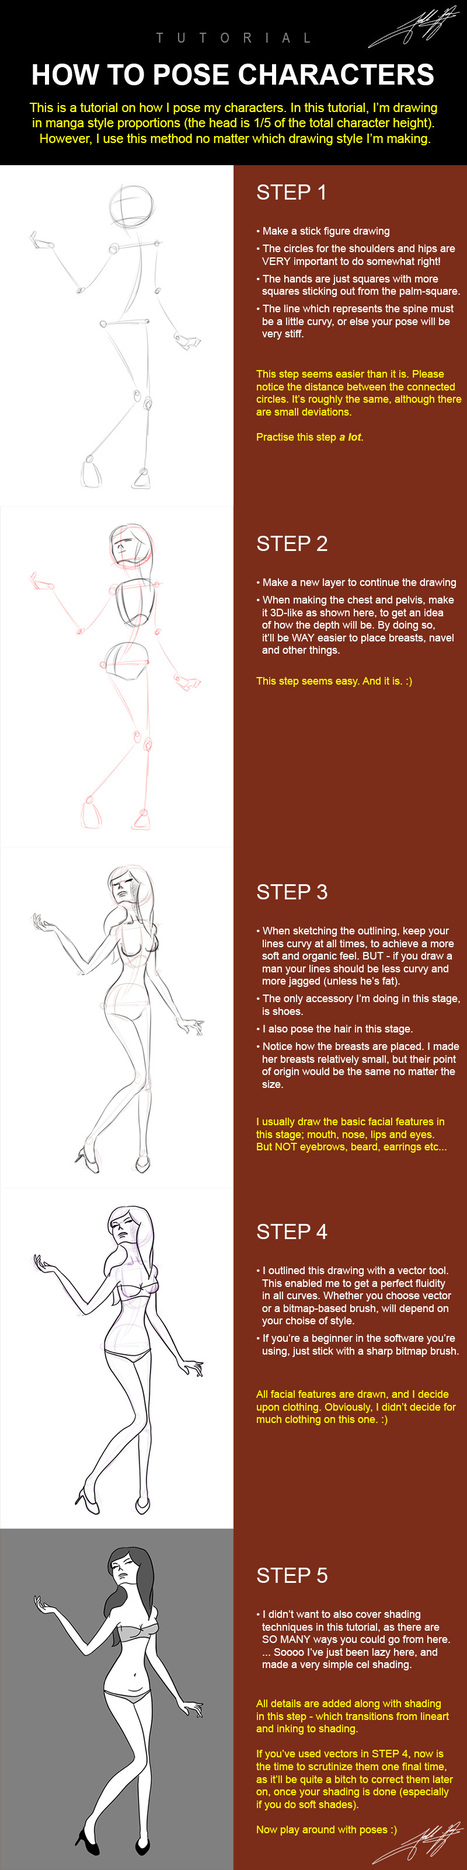 Anime Drawing In Drawing And Painting Tutorials